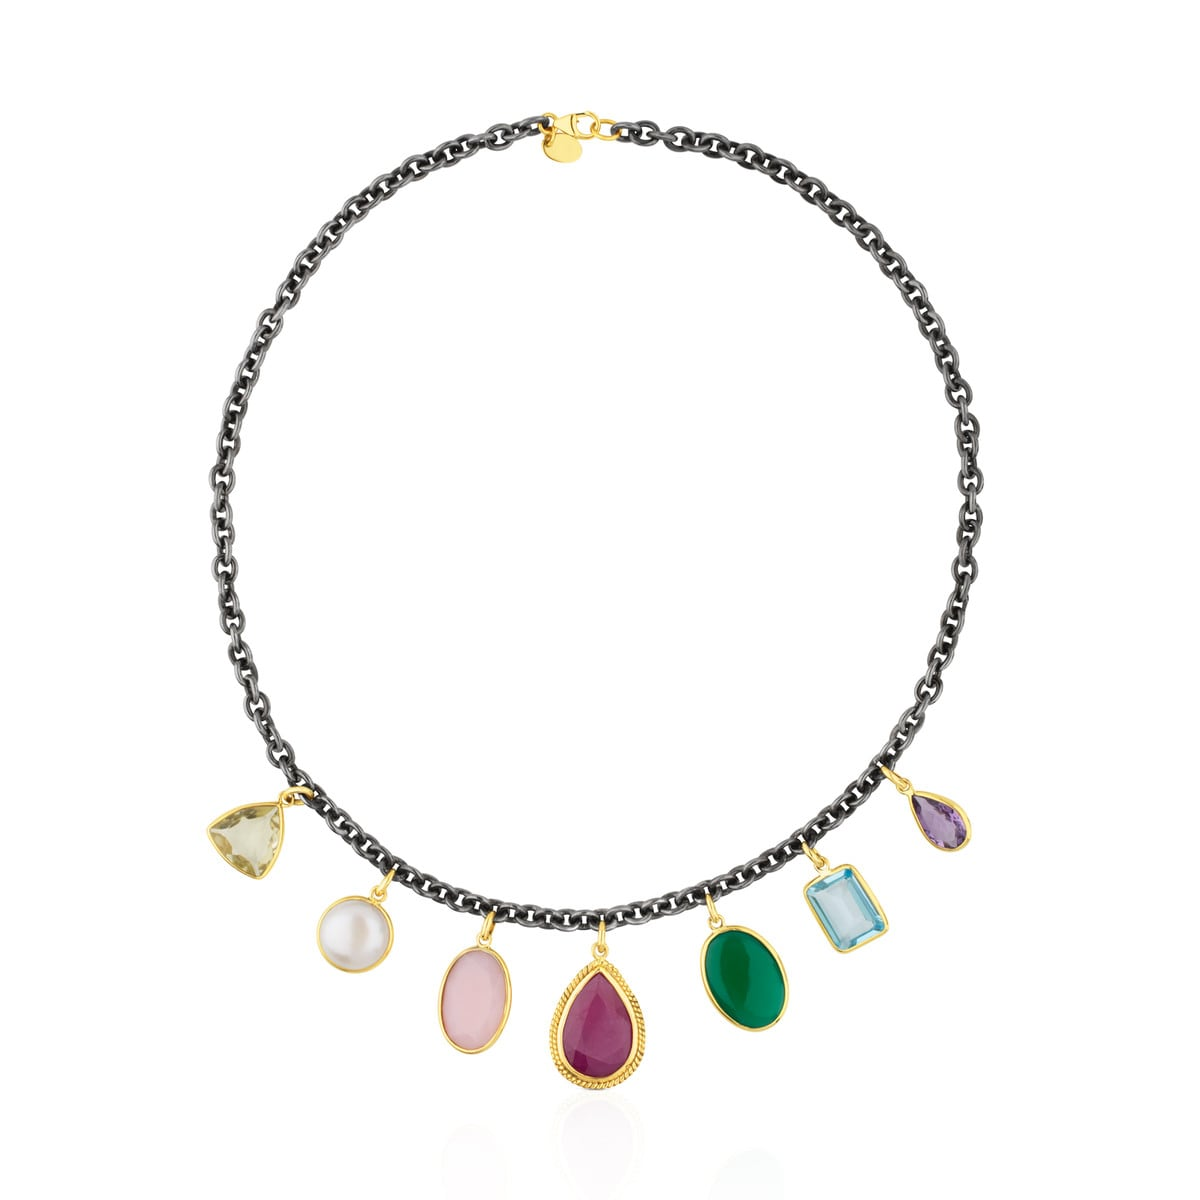 Silver and Gold Gem Power Necklace with Gemstones - Tous Site Puerto Rico